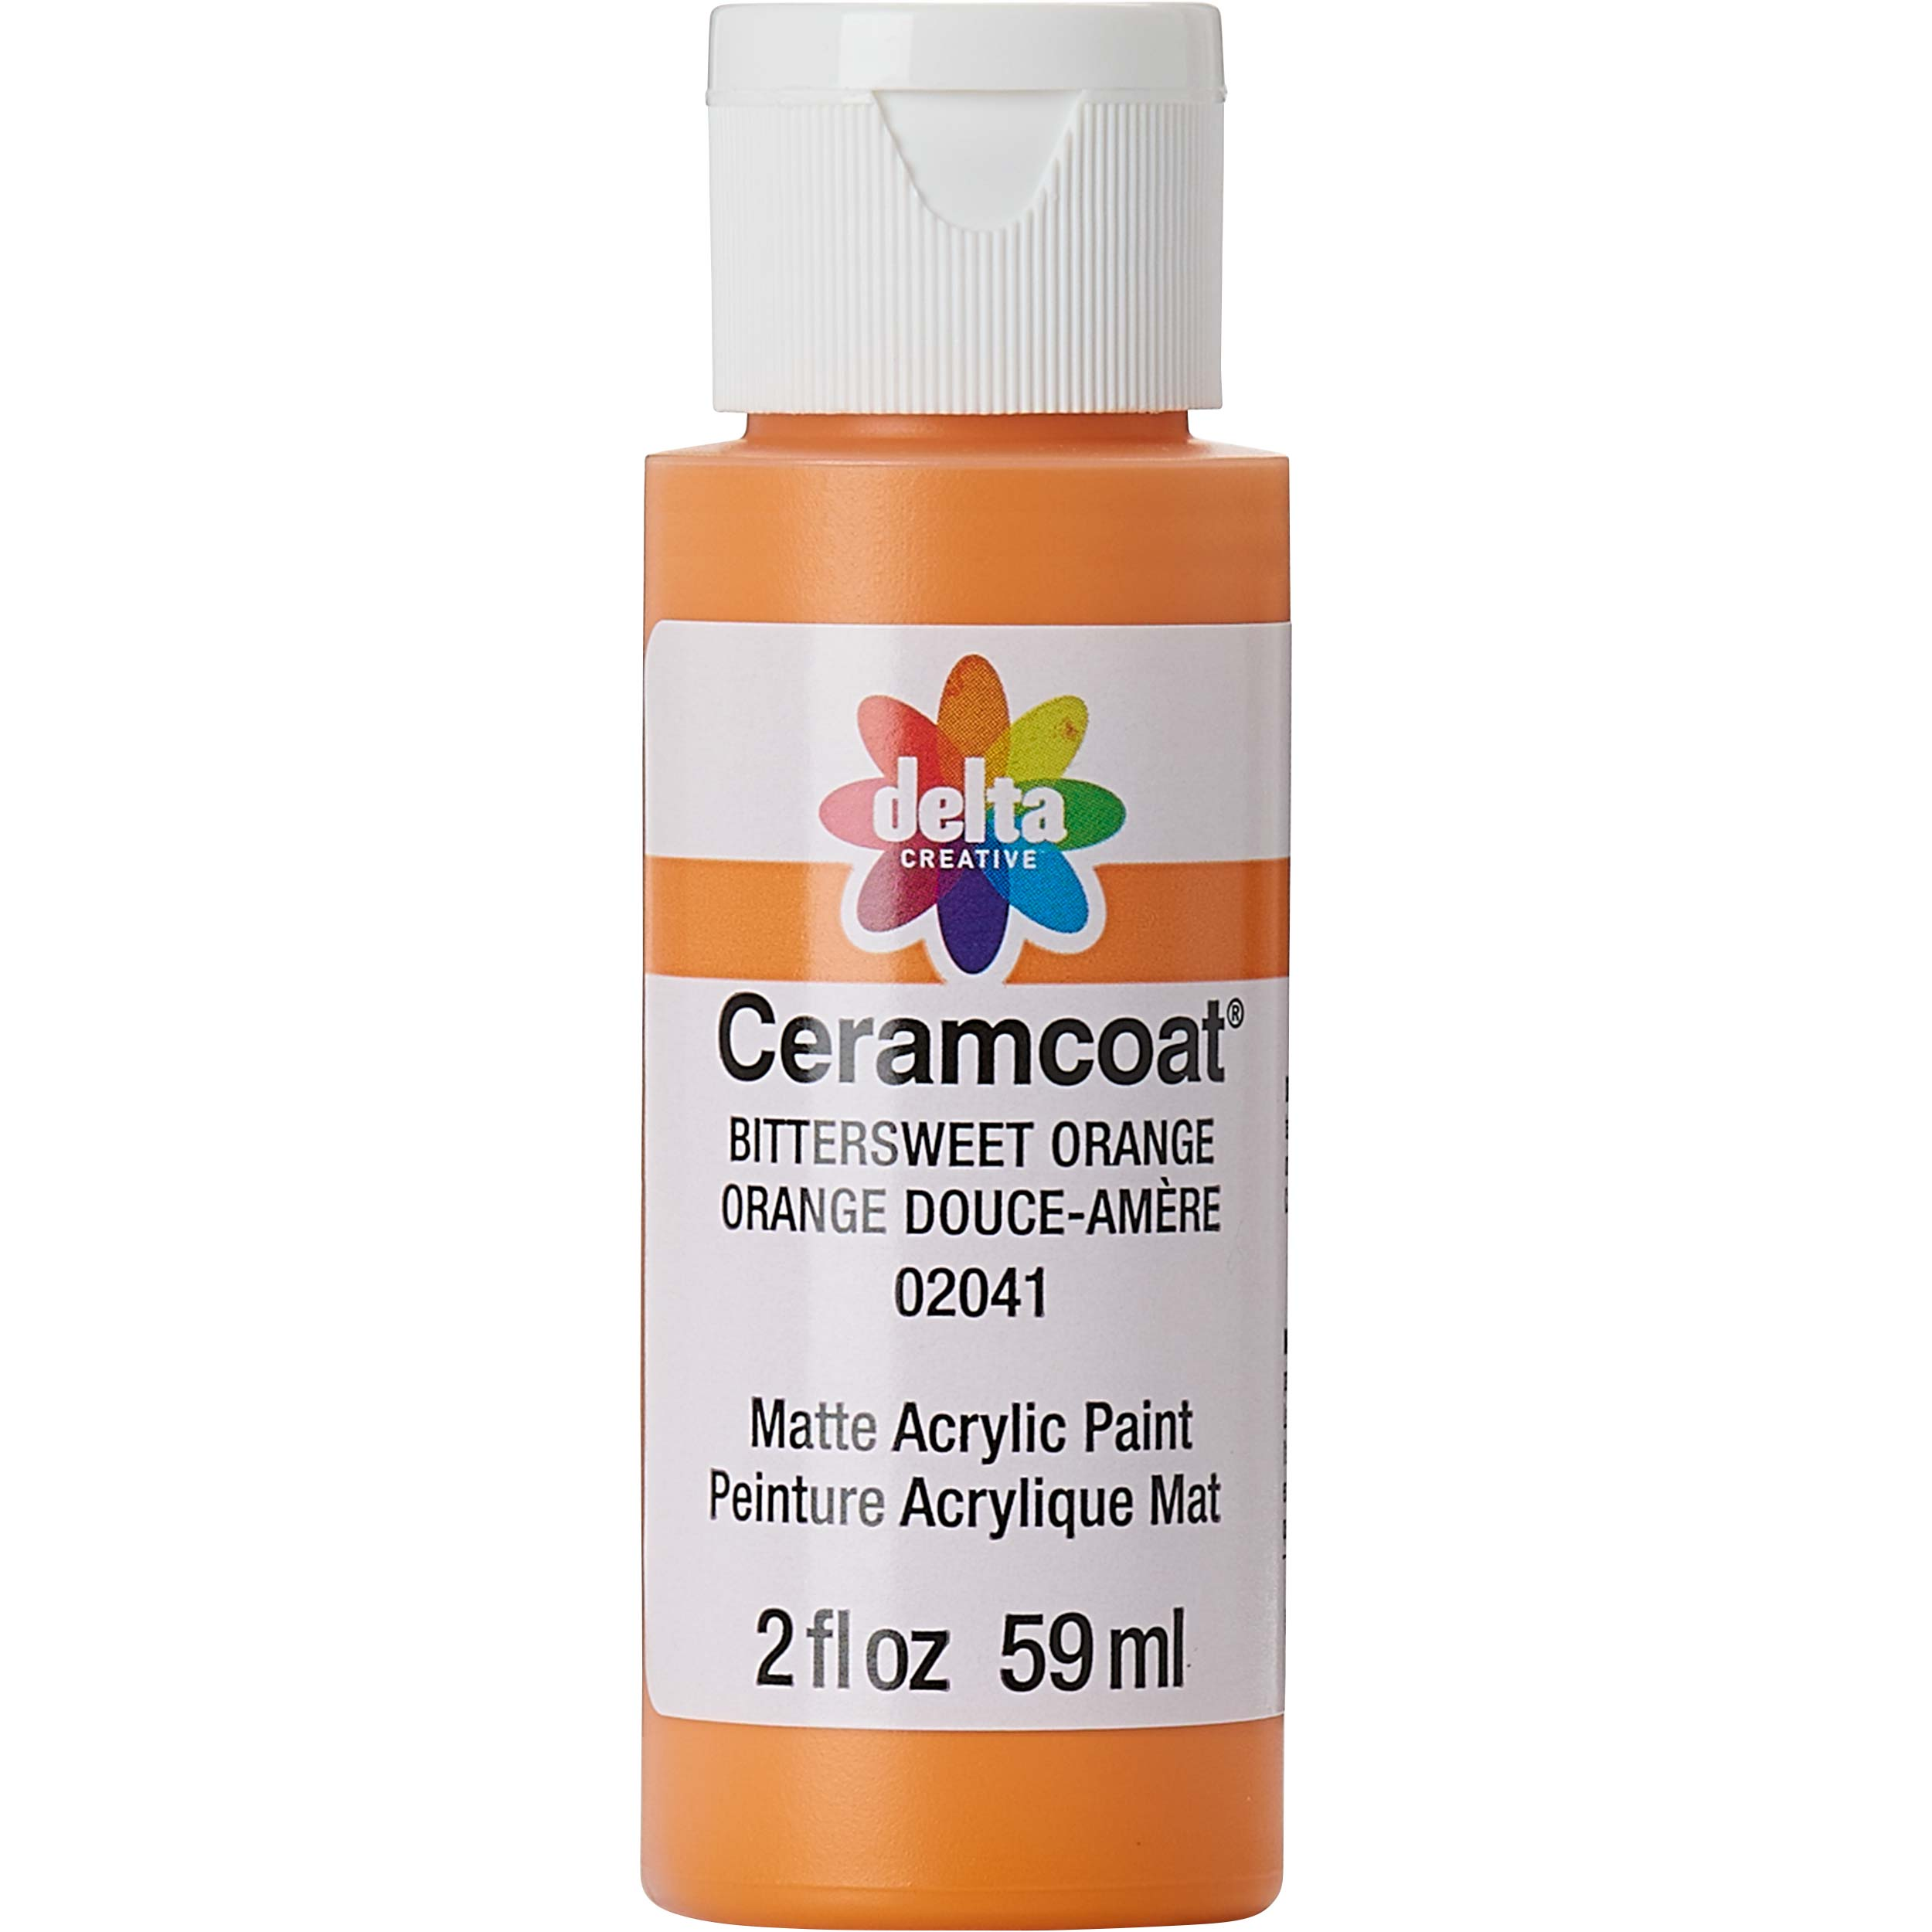 Delta Ceramcoat ® Acrylic Paint - Bittersweet Orange, 2 oz.